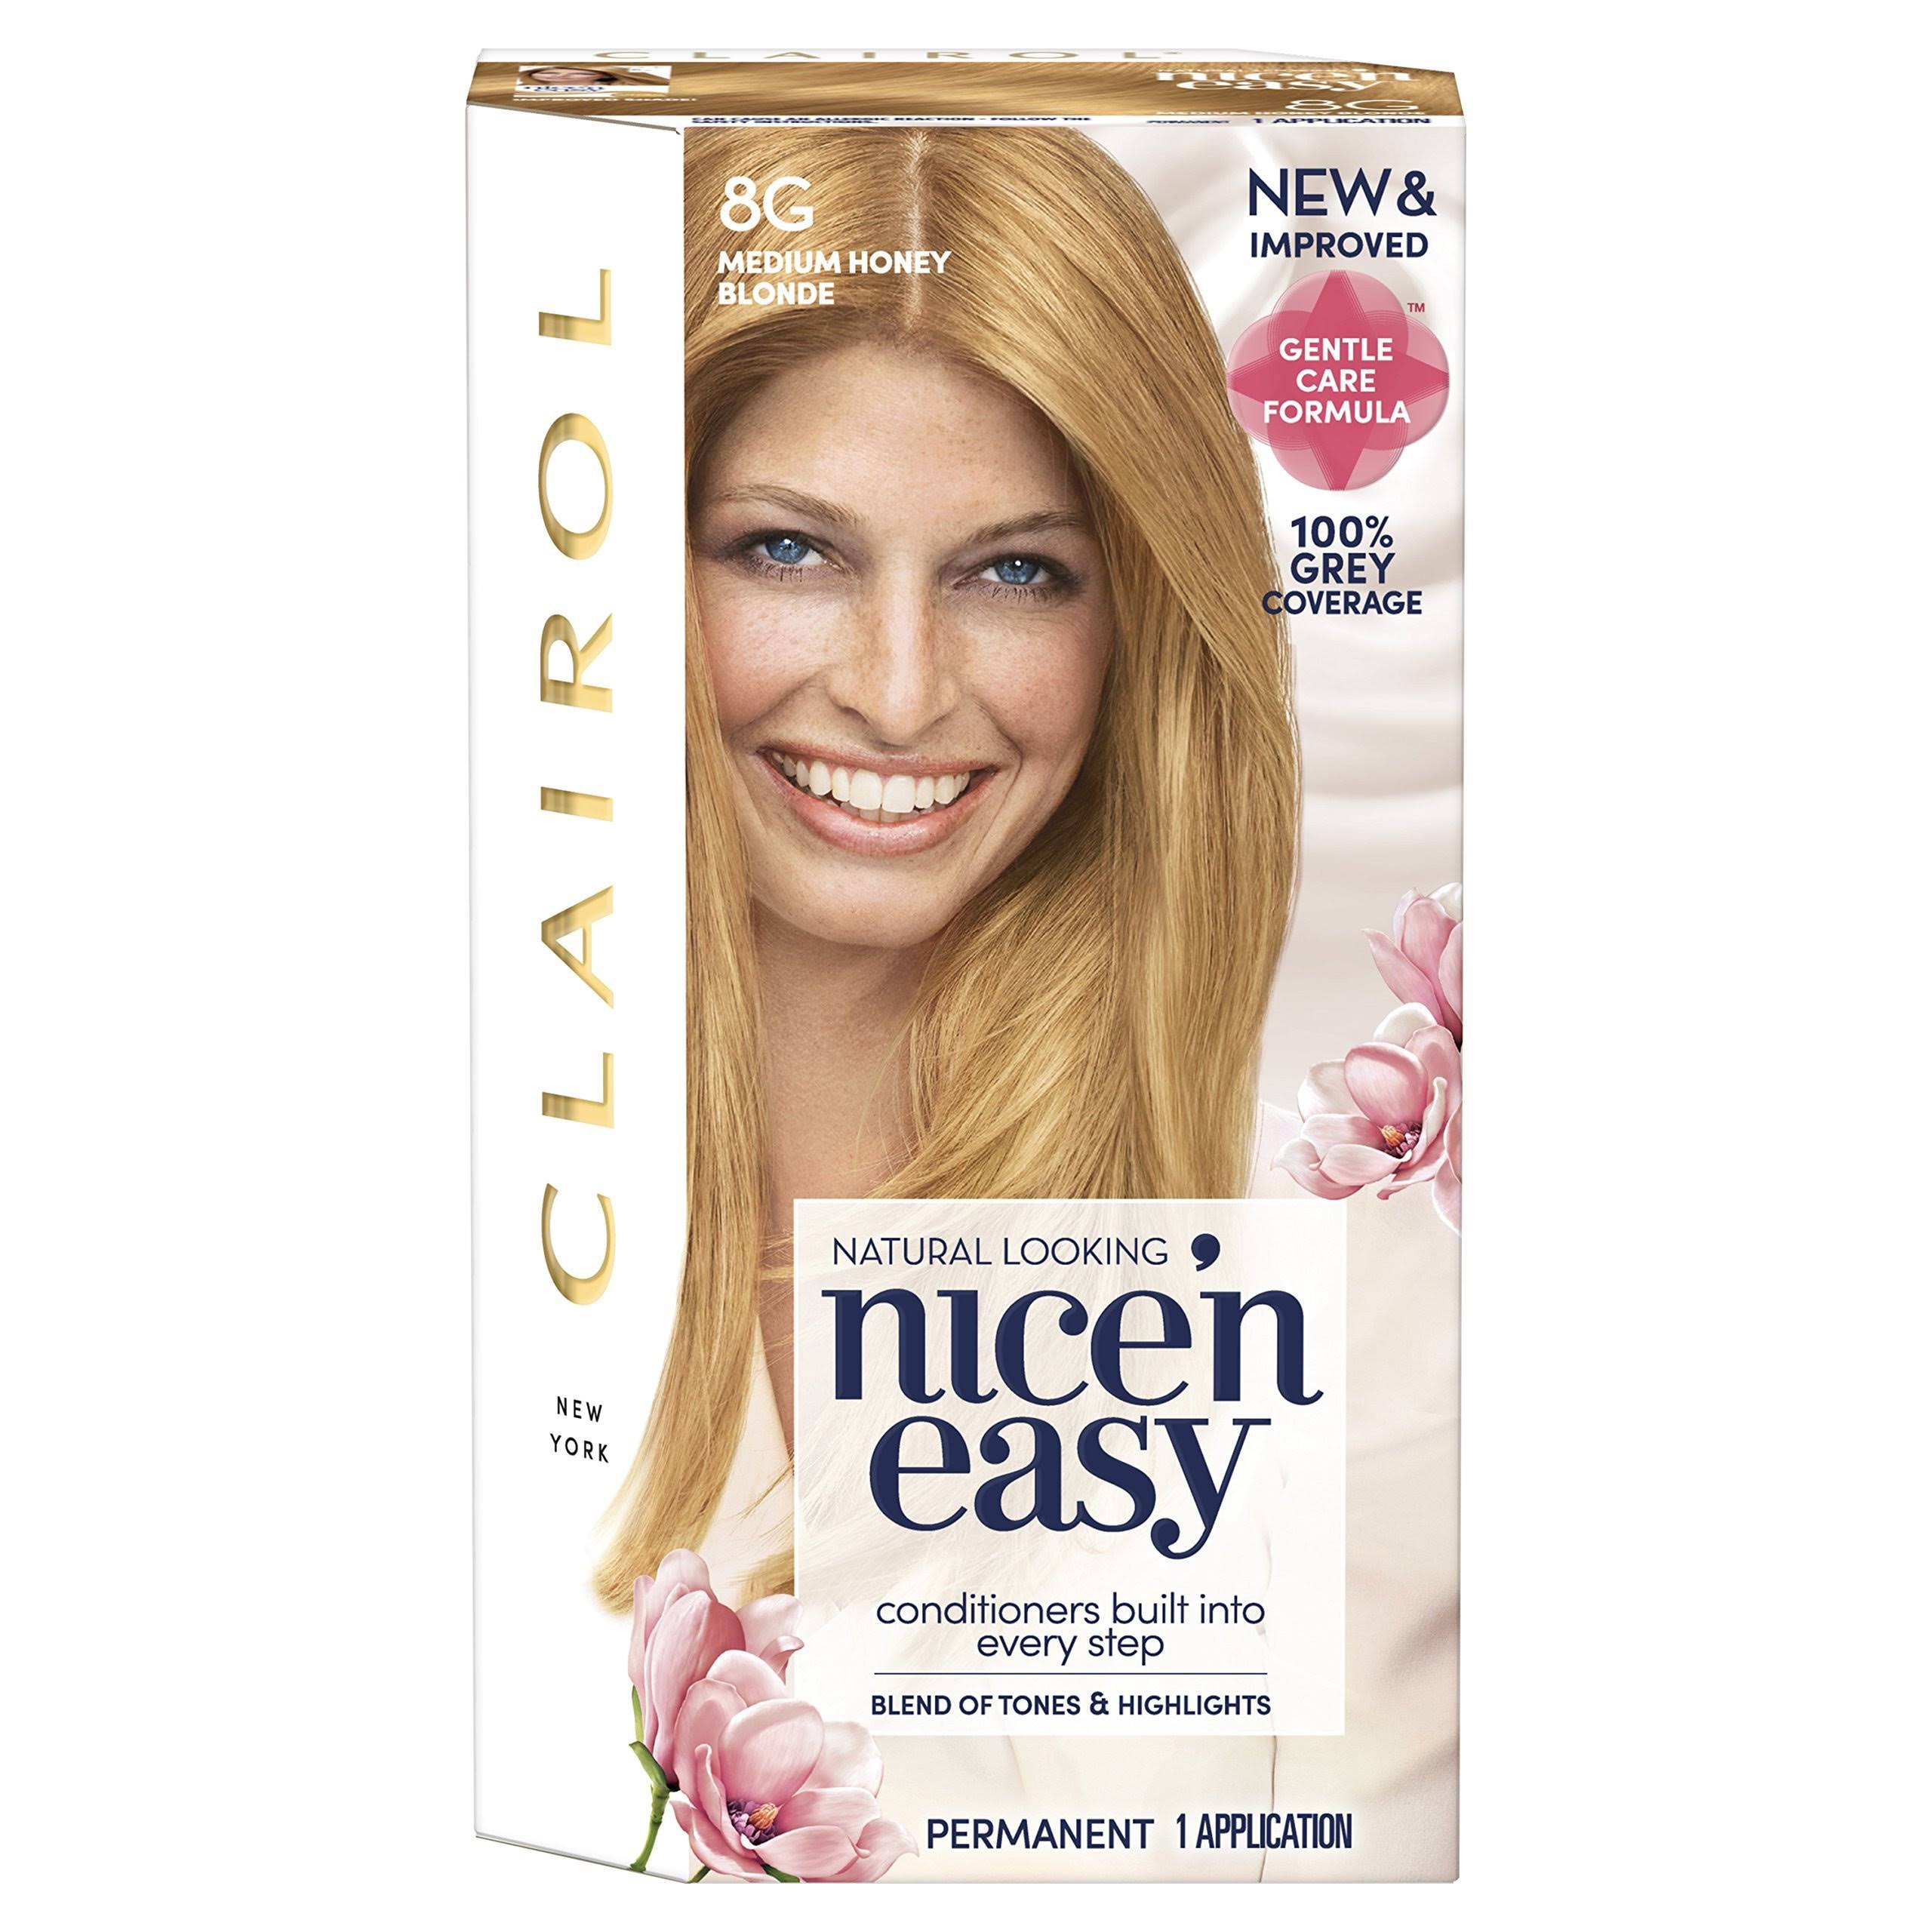 Nice'n Easy Permanent Hair Dye - Medium Honey Blonde, 8g